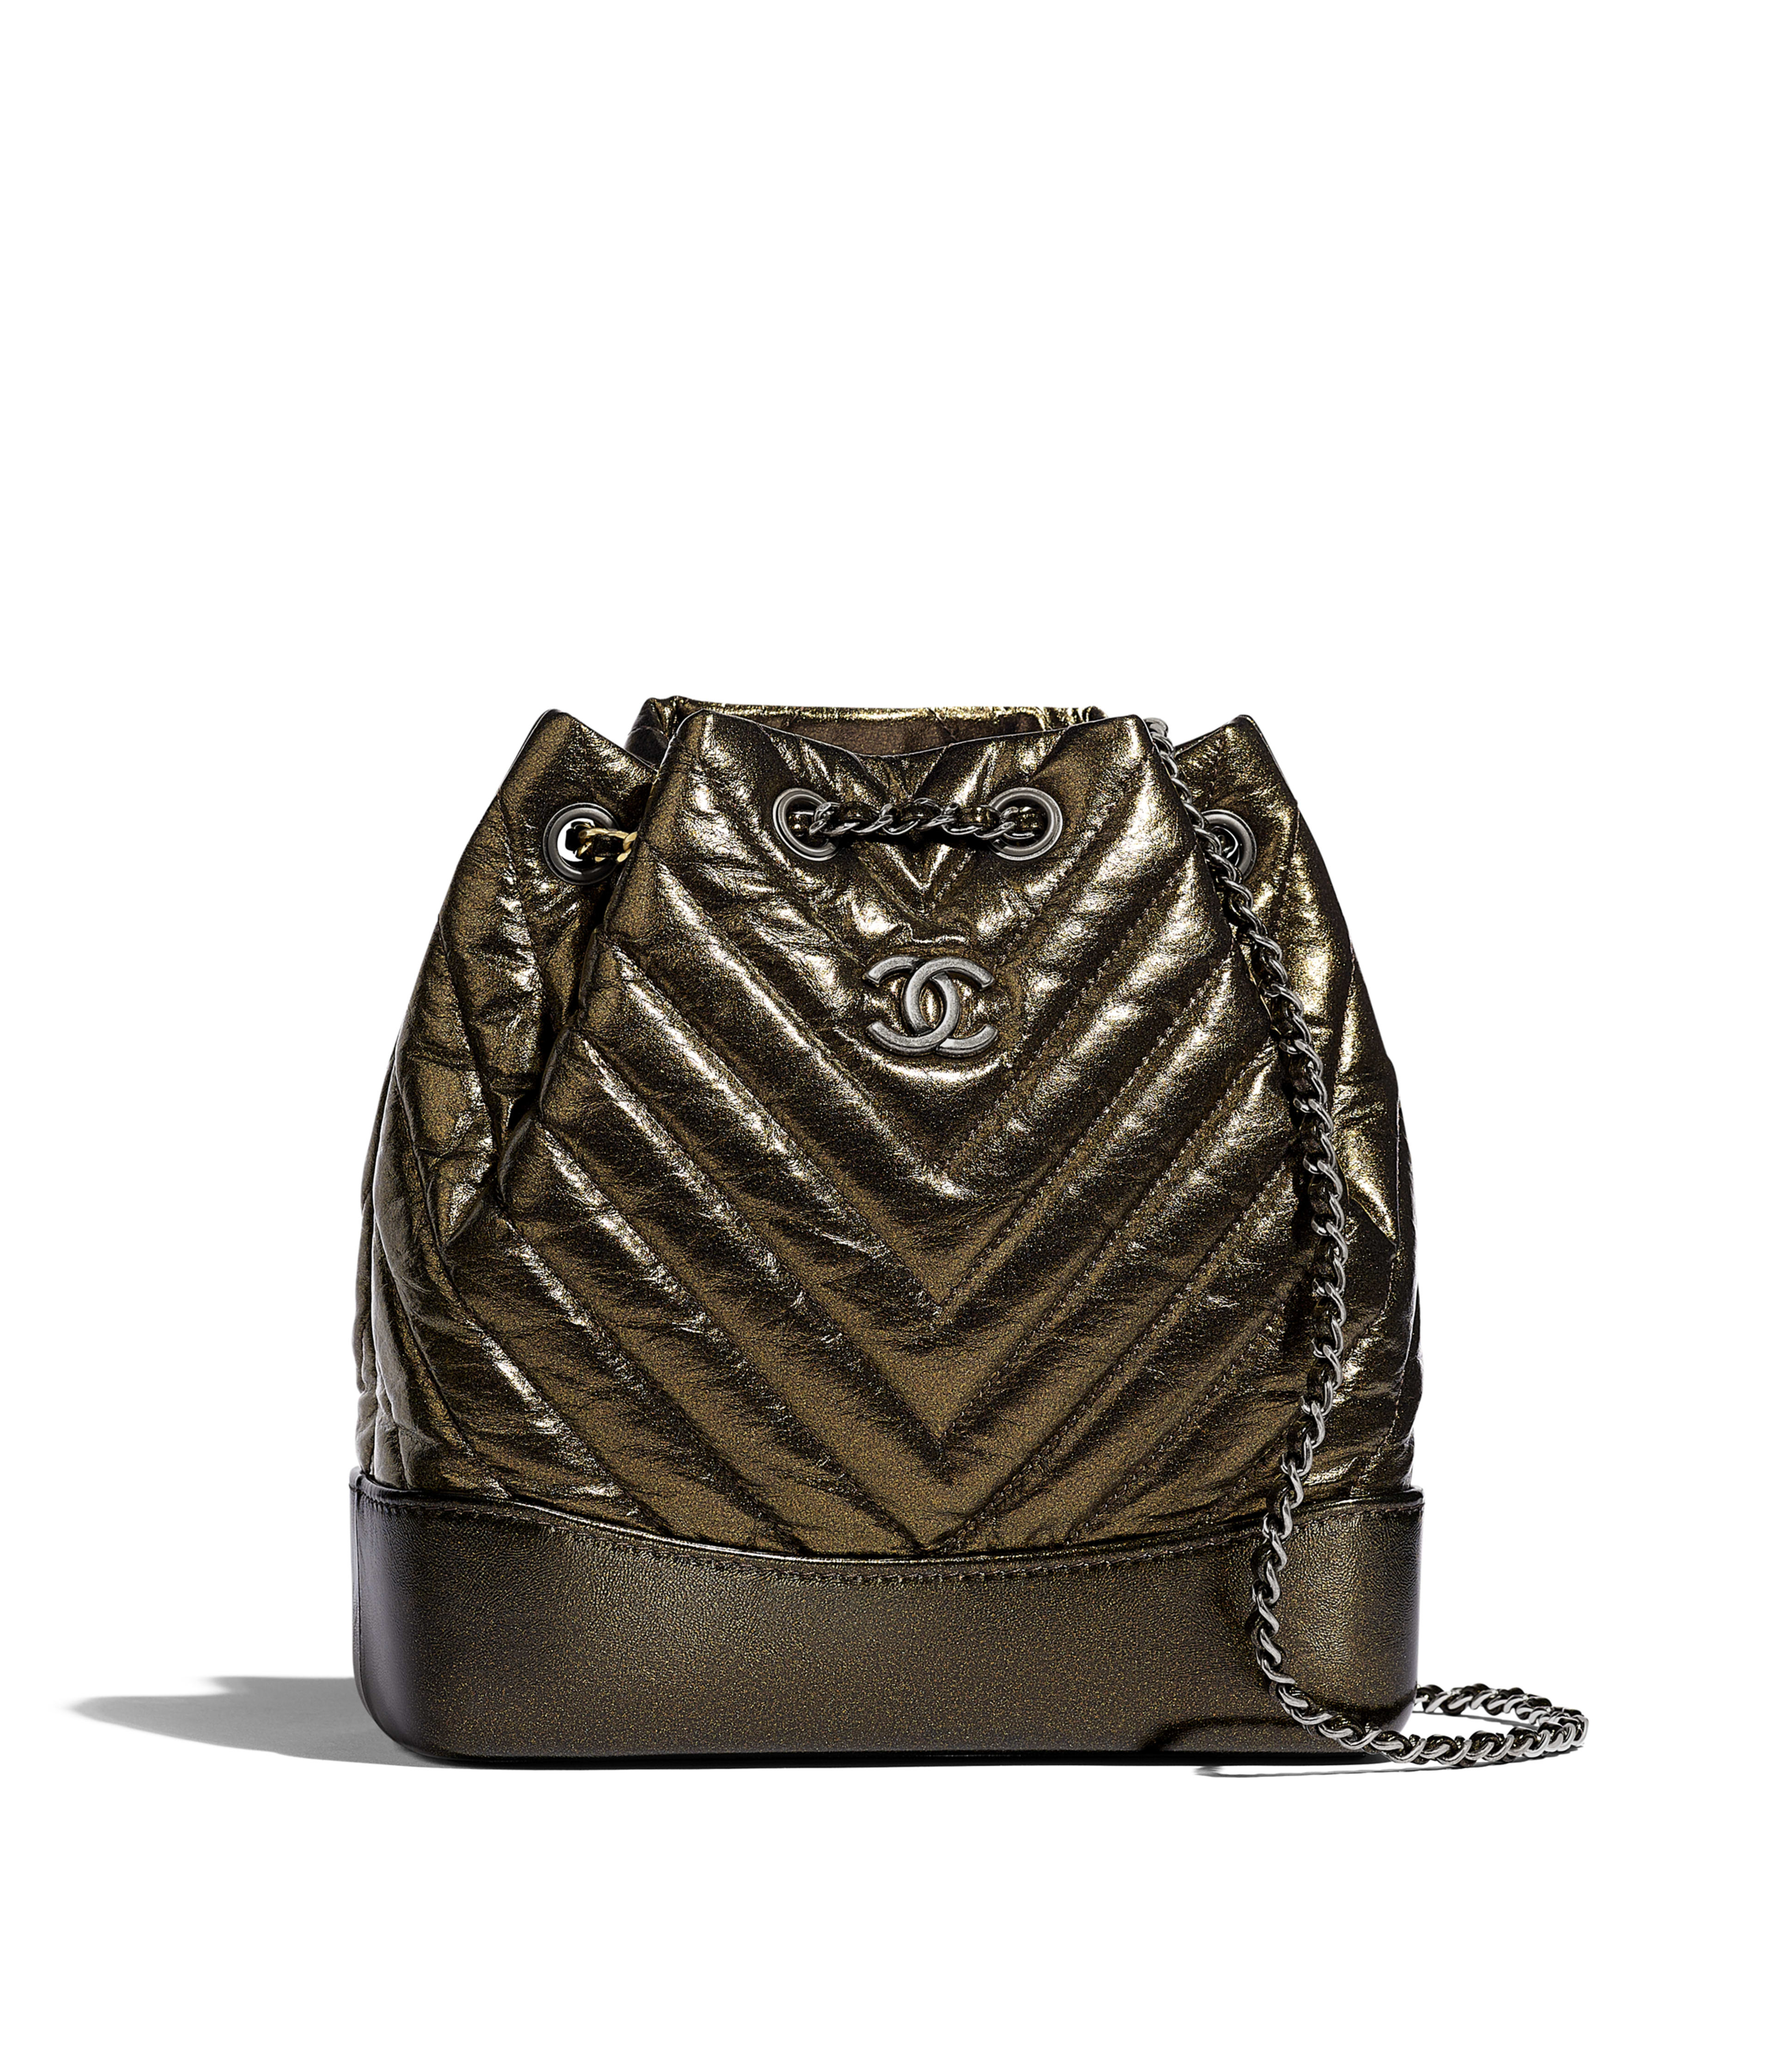 163b75889c32 CHANEL'S GABRIELLE Small Backpack Aged Calfskin, Silver-Tone & Gold-Tone  Metal, Gold Ref. A94485B00877N4779